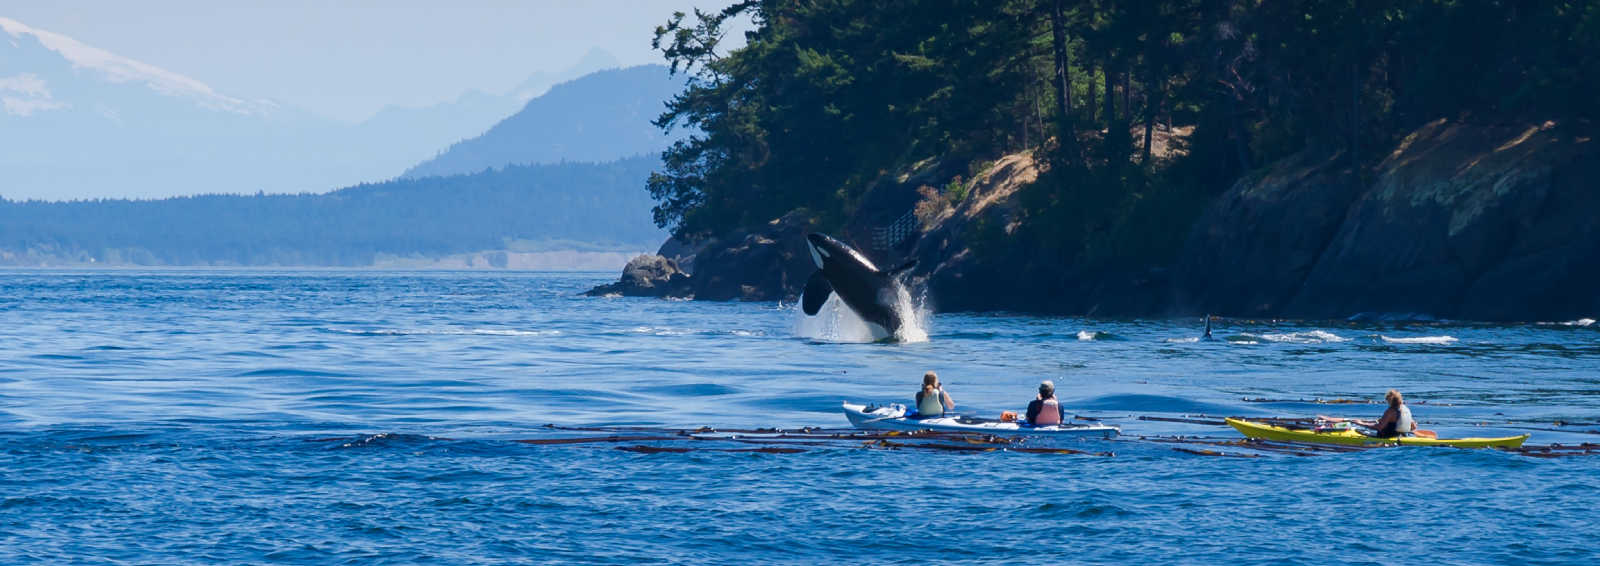 Kayaking with Orcas in Alaska